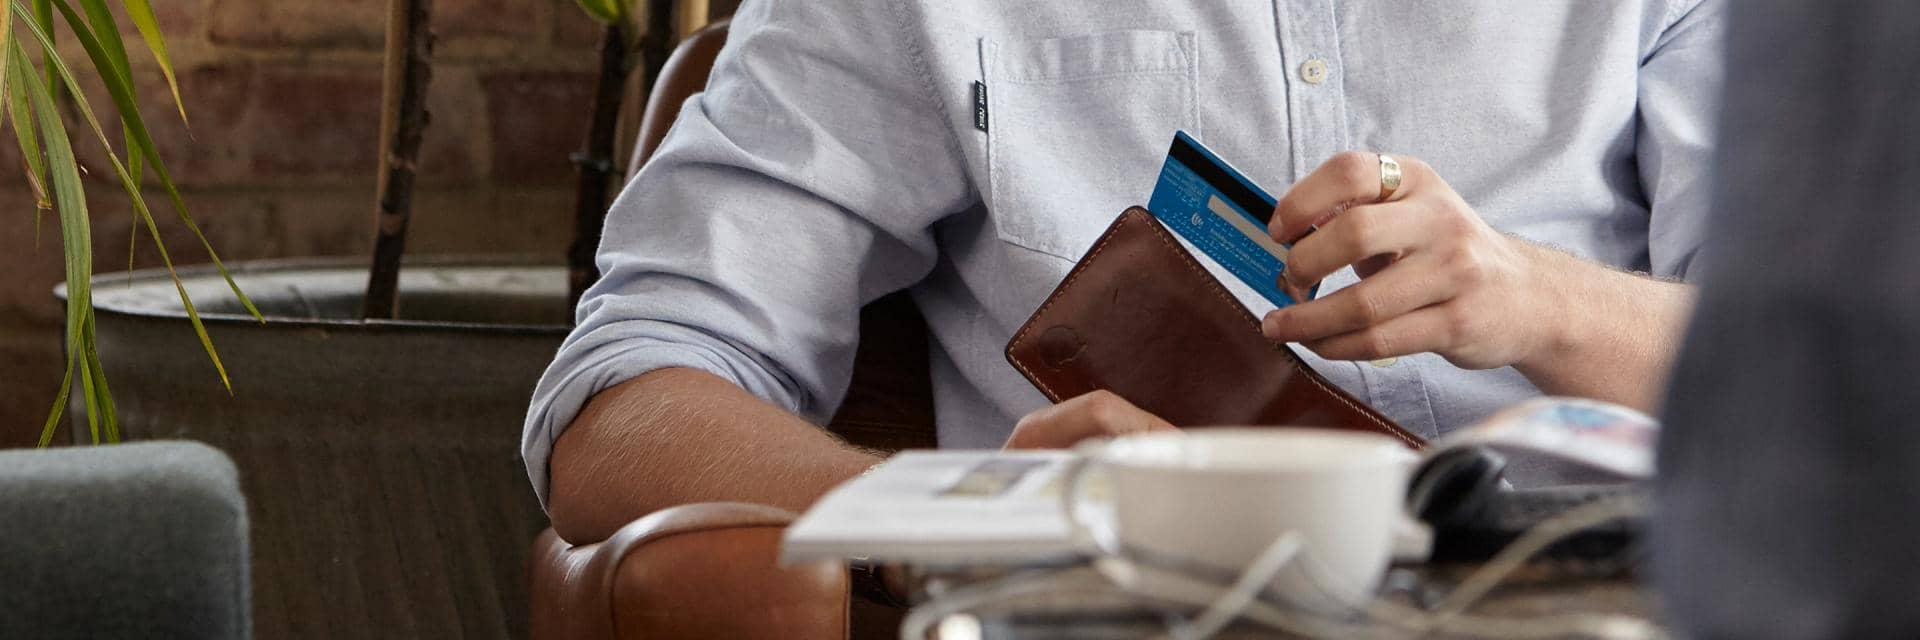 Close up of a man taking a blue bank card from a wallet